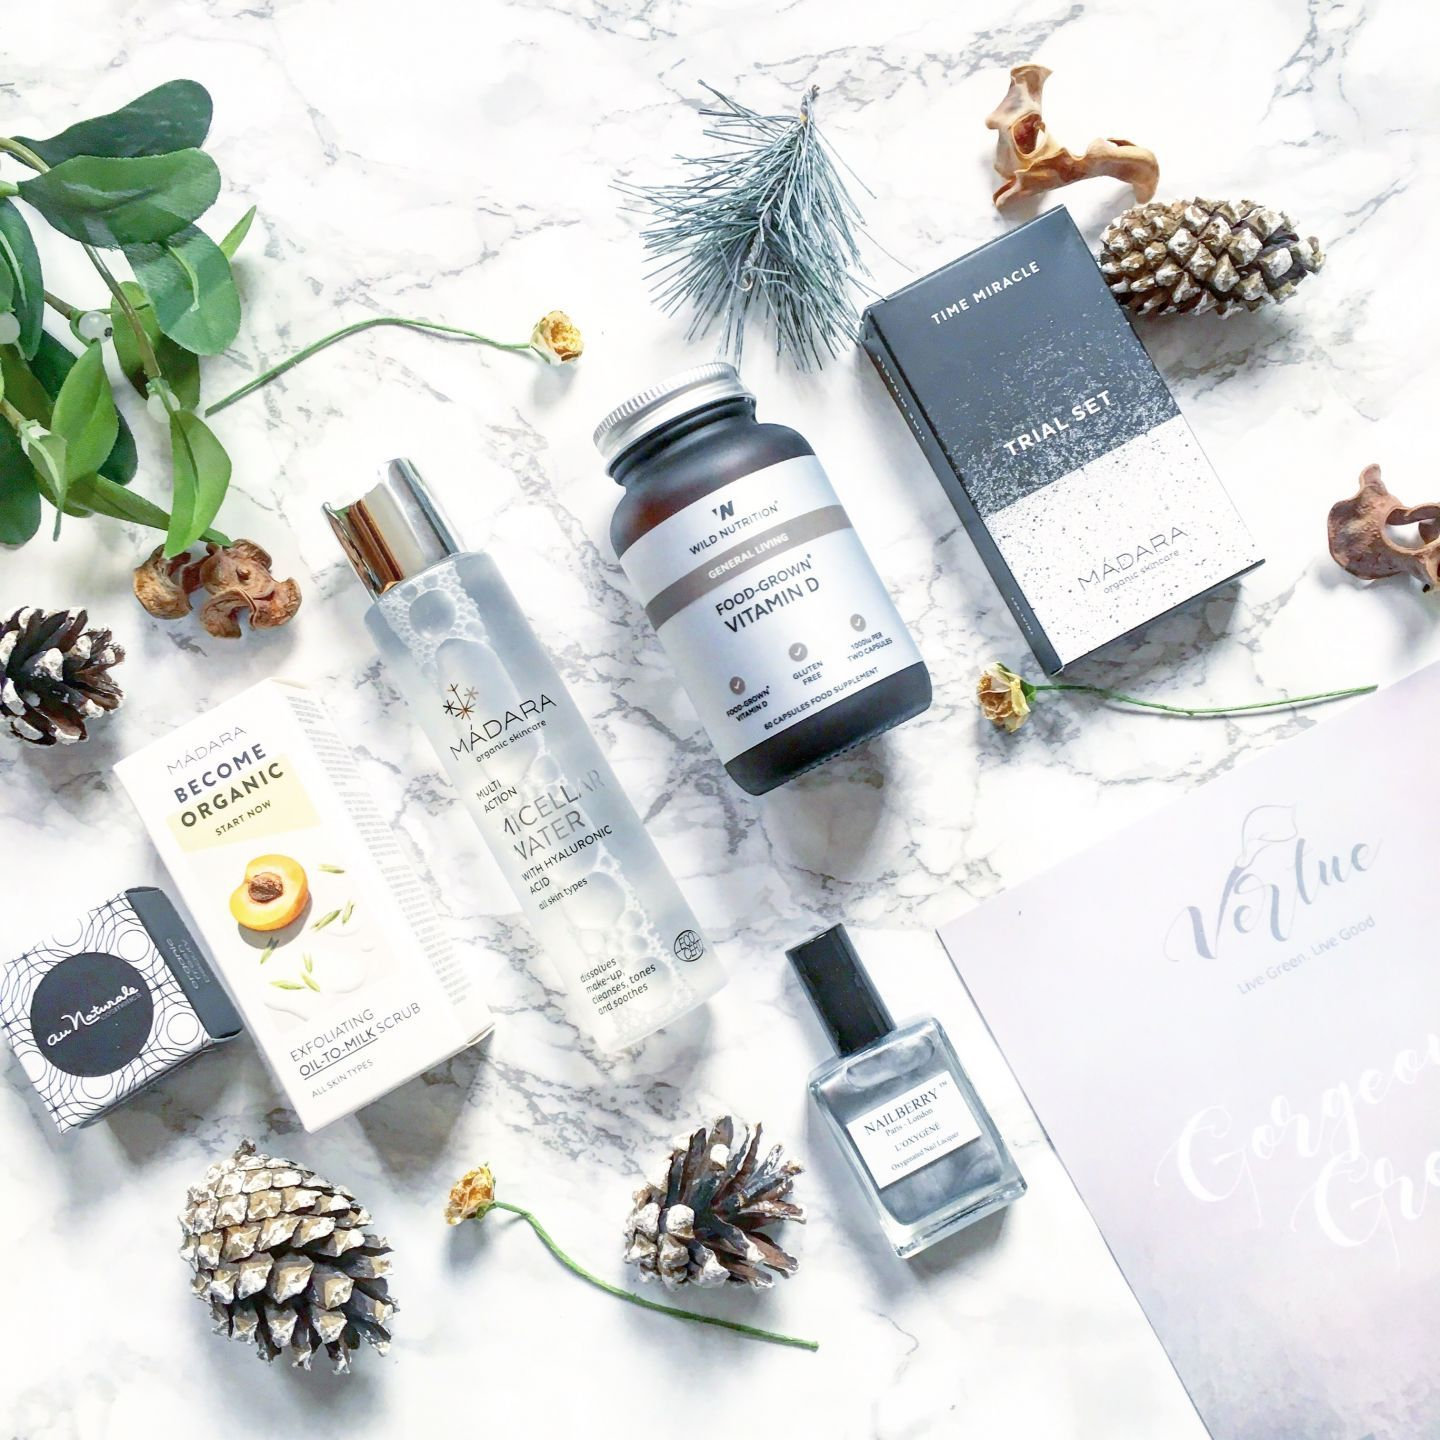 Vertue Box Review - December 2016 - A Bloggers Beauty    https://www.abloggersbeauty.com/2016/12/20/vertue-box-review-december-2016/